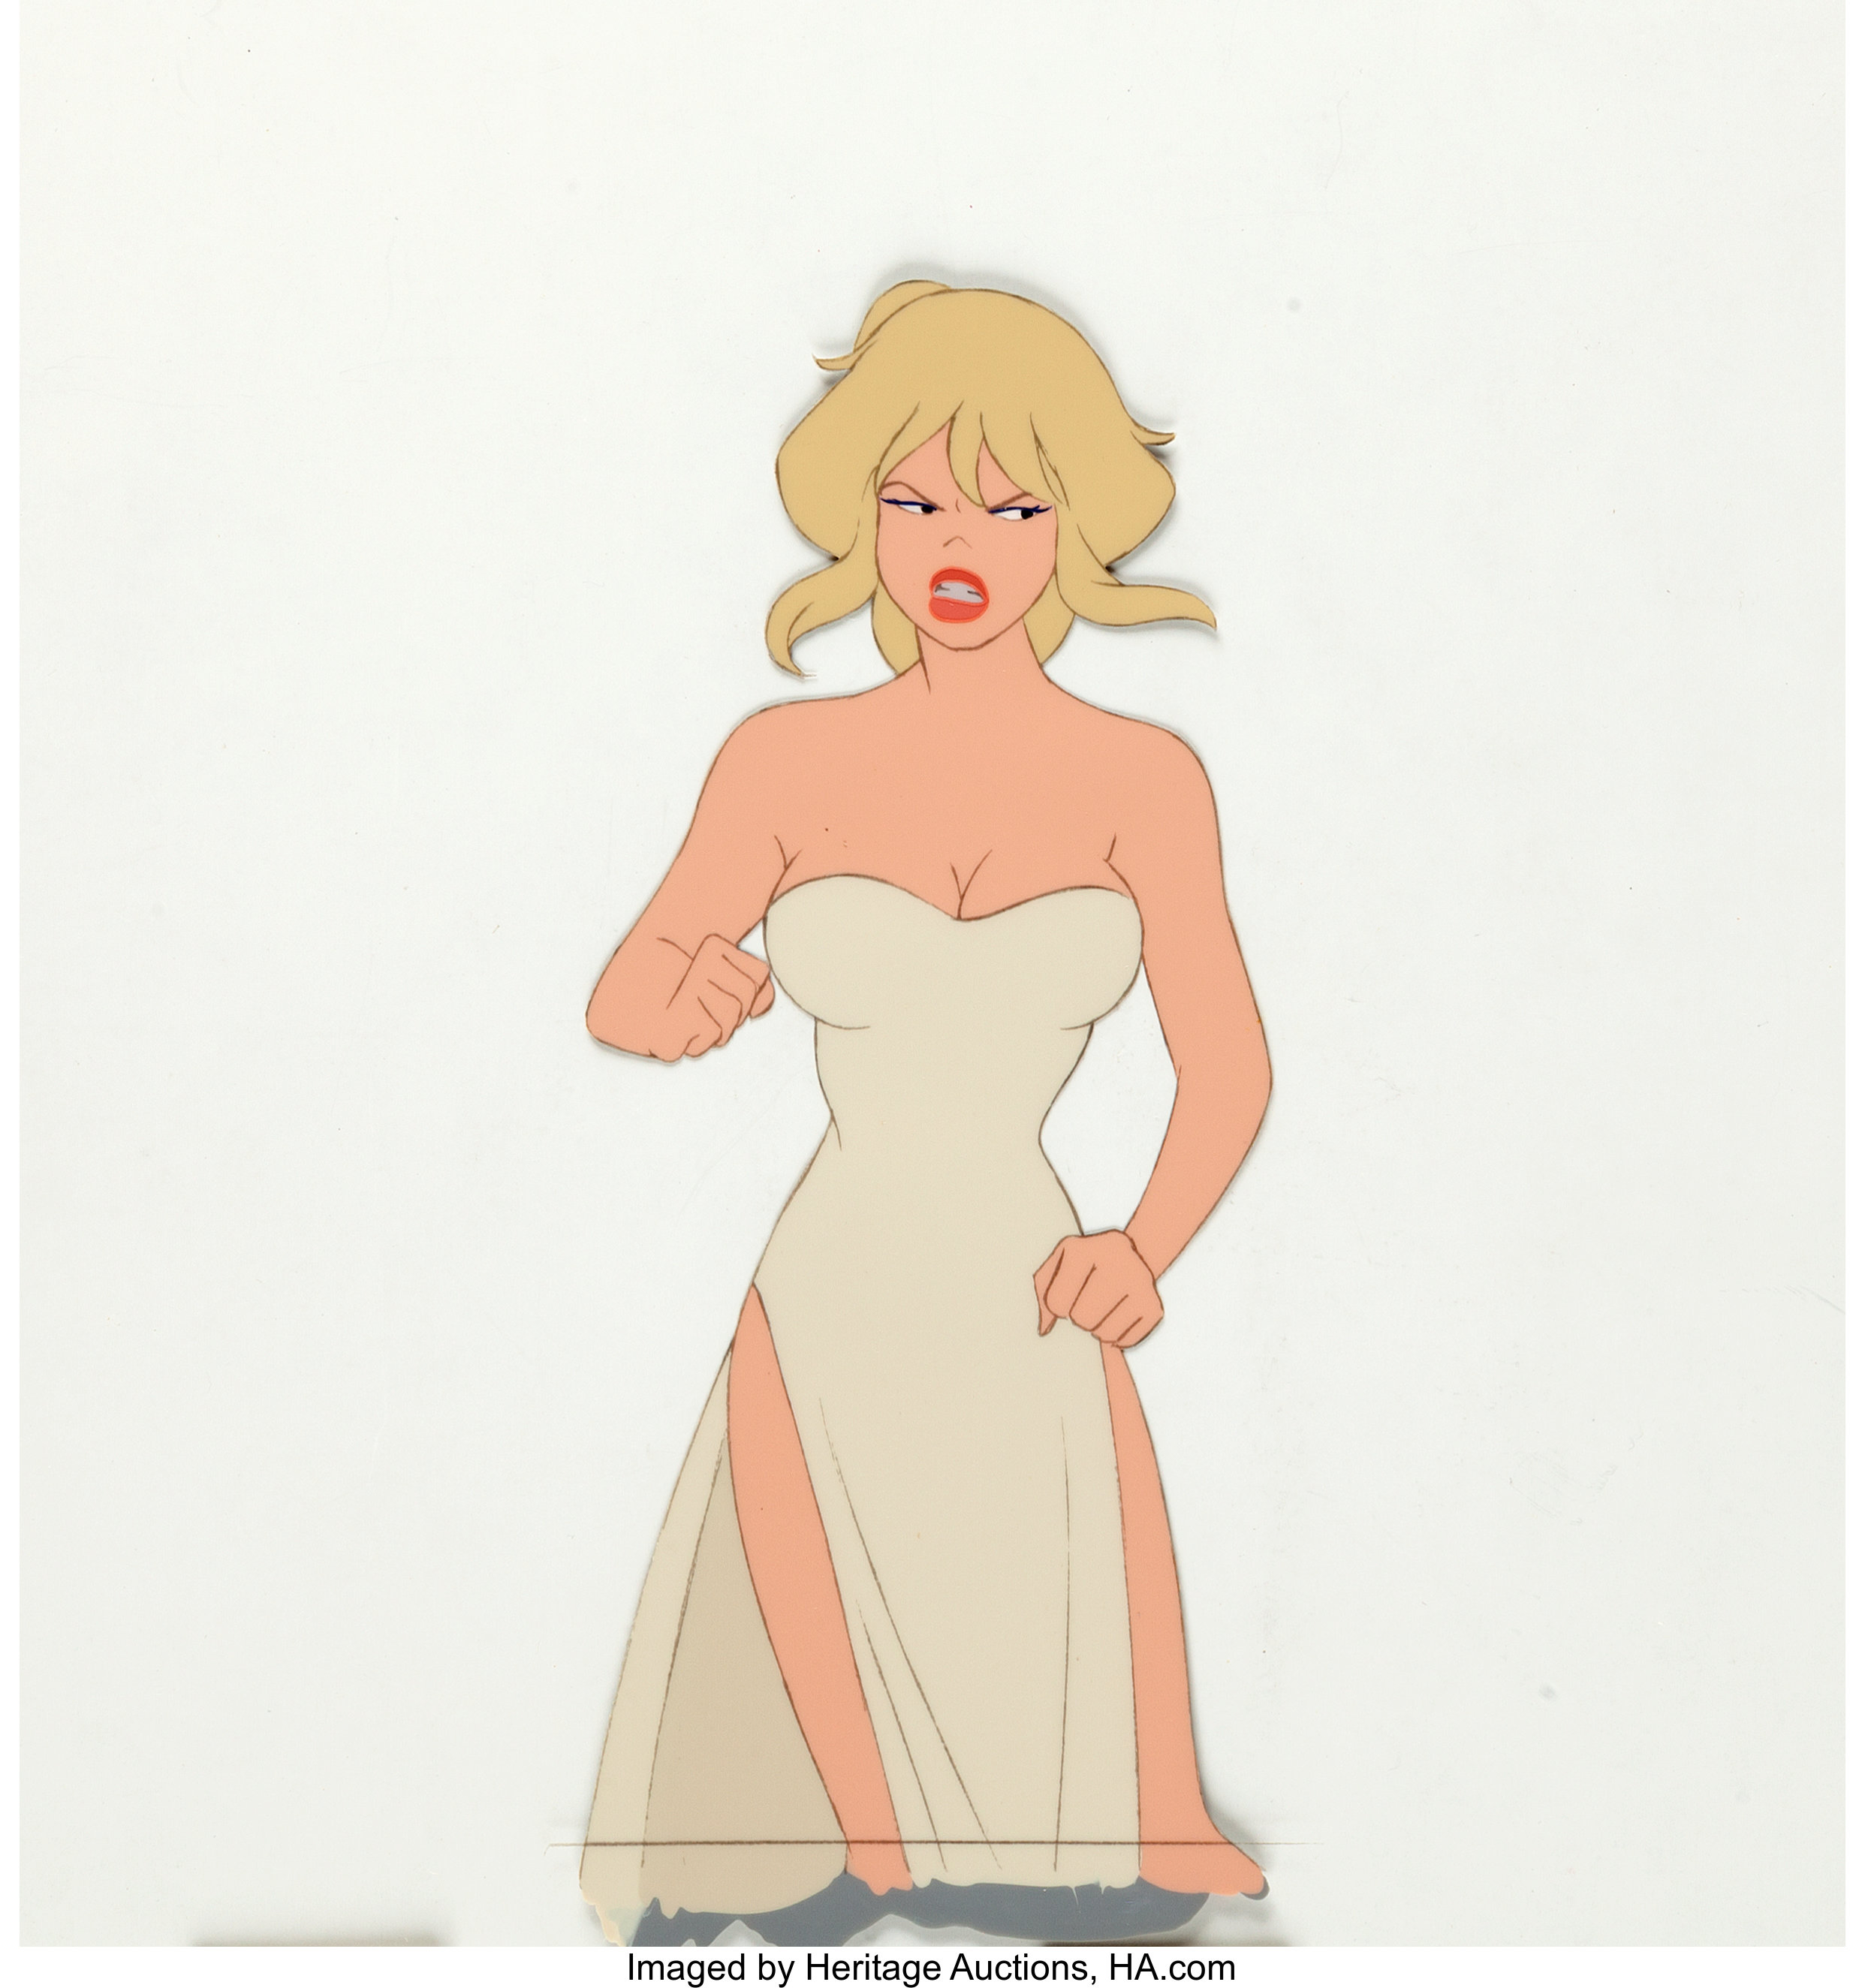 Cool World Holli Would Production Cels Rough Draft Studios Lot 96603 Heritage Auctions Holli would by kamillyonsiya on deviantart. heritage auctions